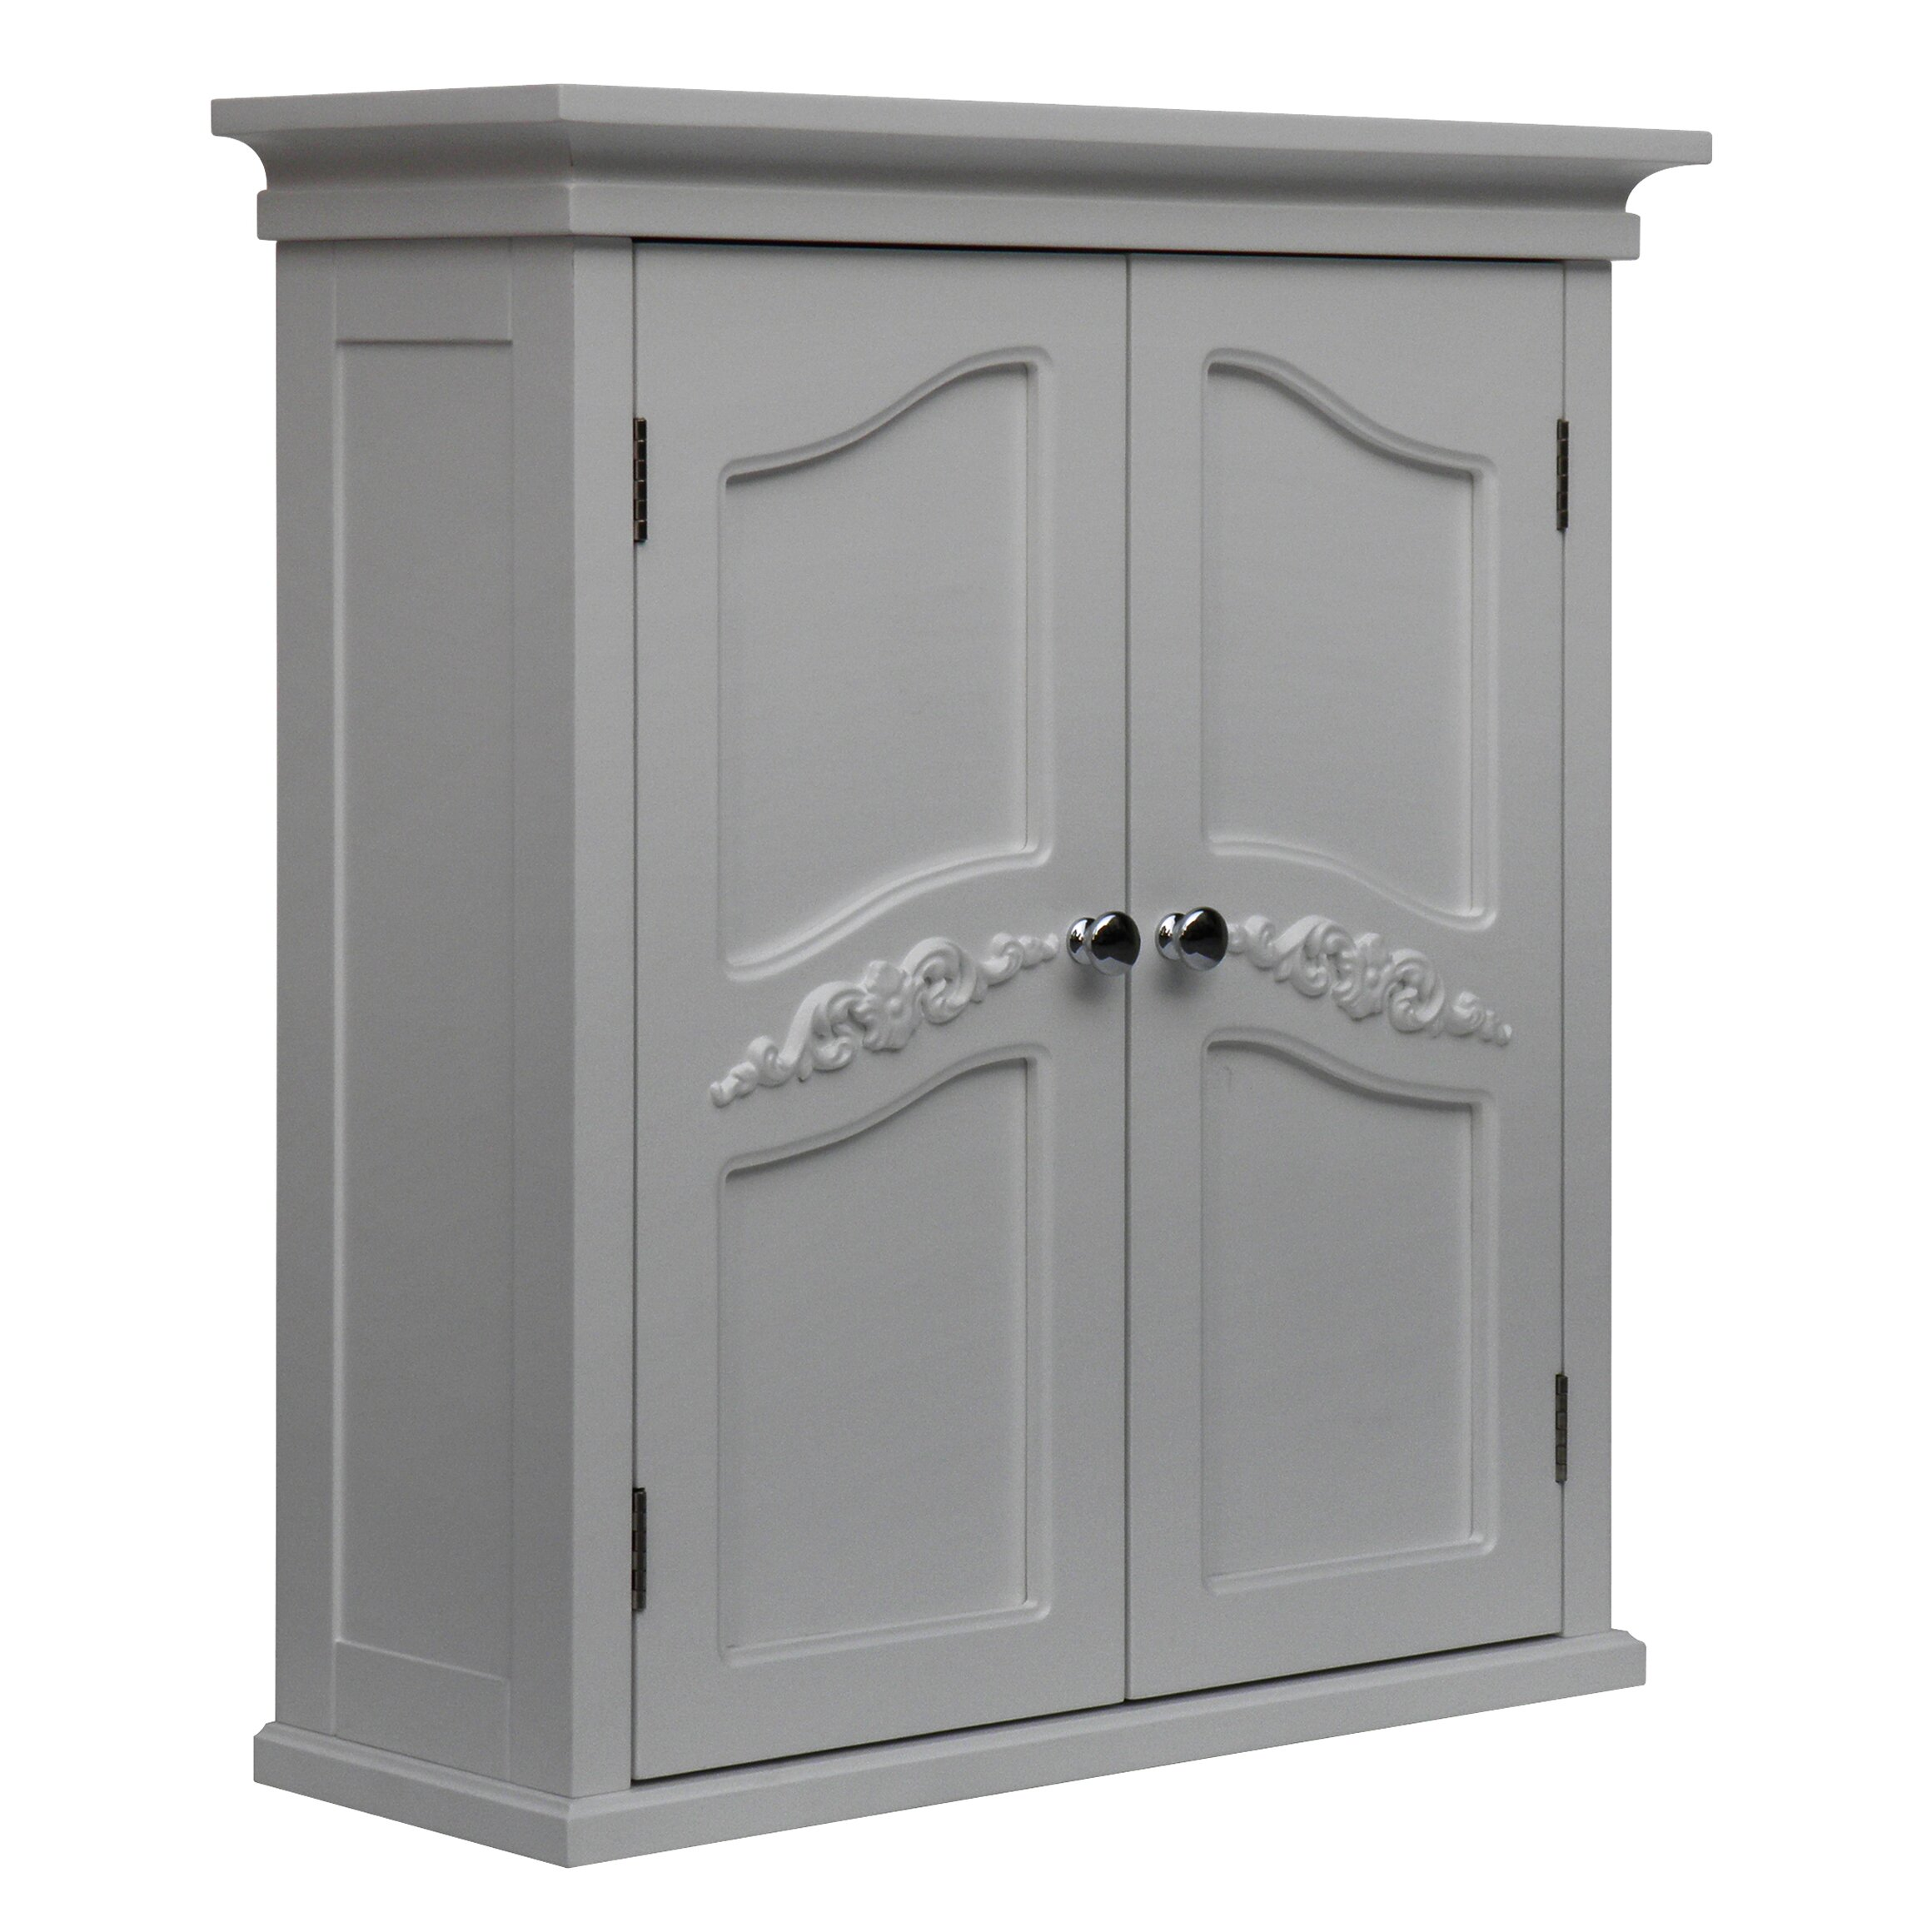 cabinets on wheels home fashions versailles 22 quot w x 24 quot h wall 13159